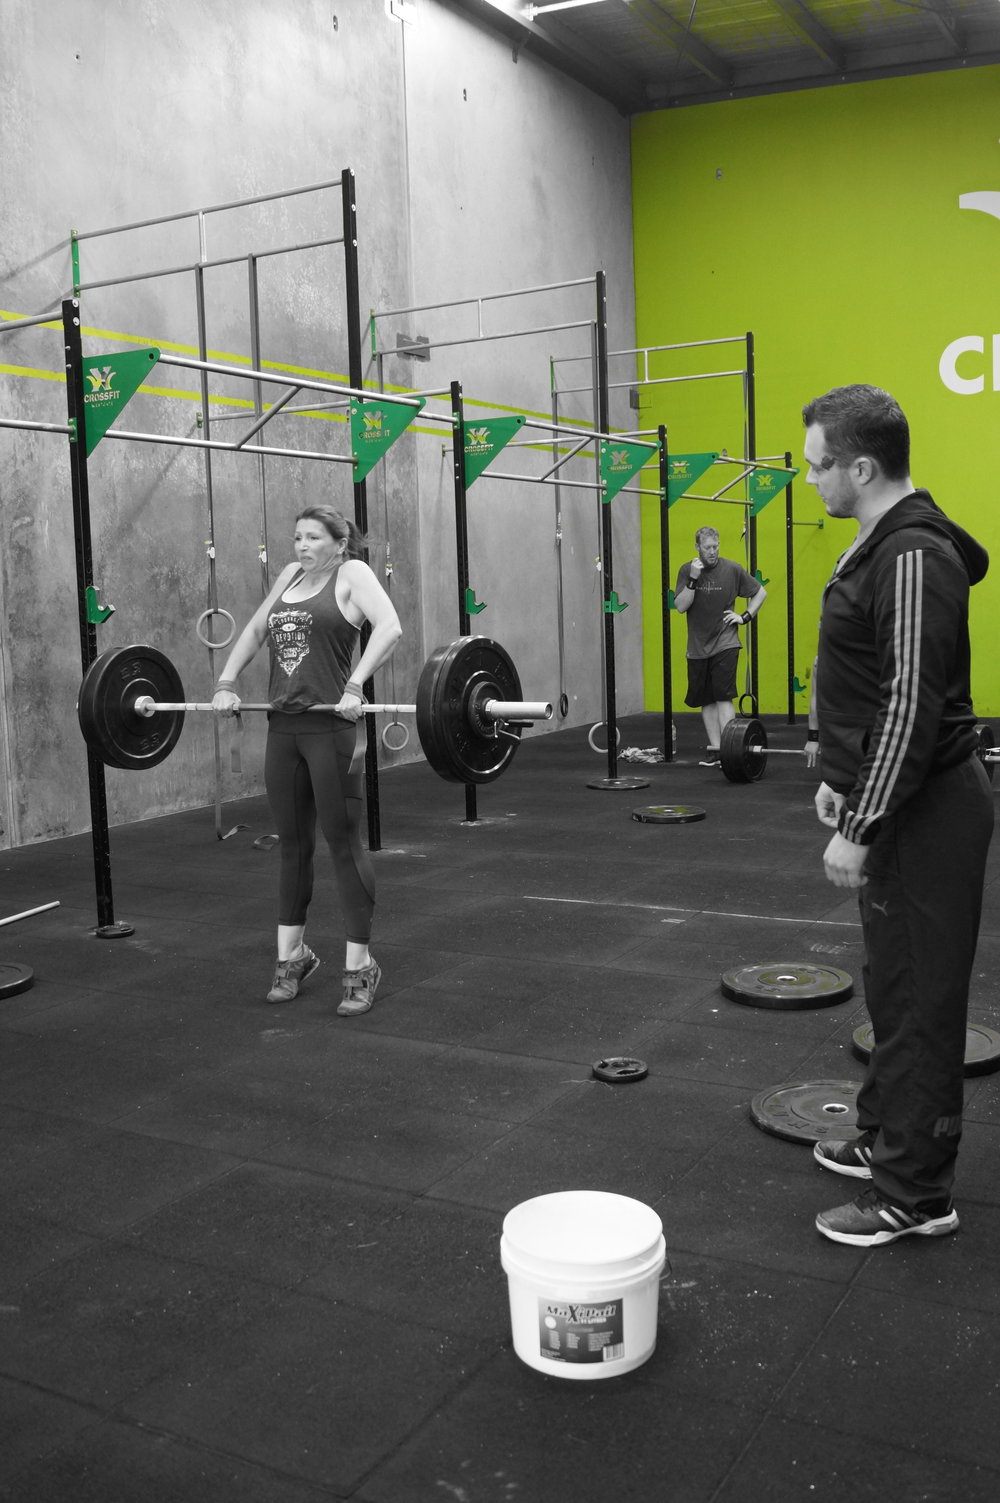 Pictured: Chelsea (CrossFit Westgate member) and Yevgeniy (Weightlifting Coach)